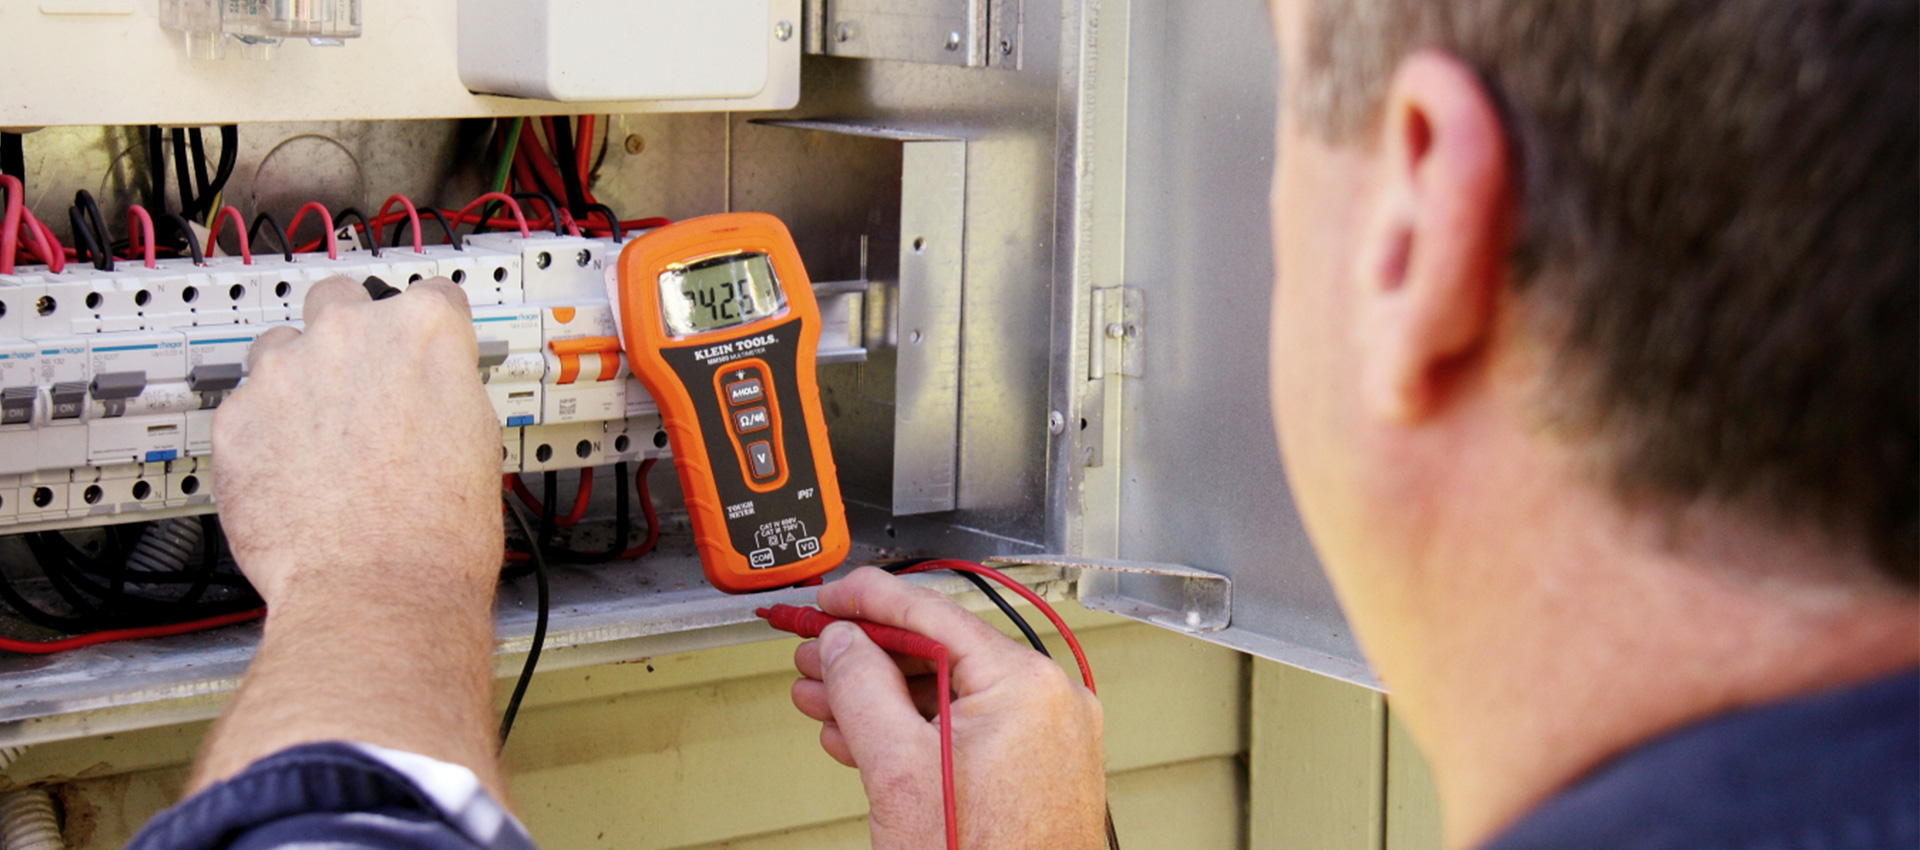 pre purchase electrical inspections brisbane - electrical safety inspections in brisbane